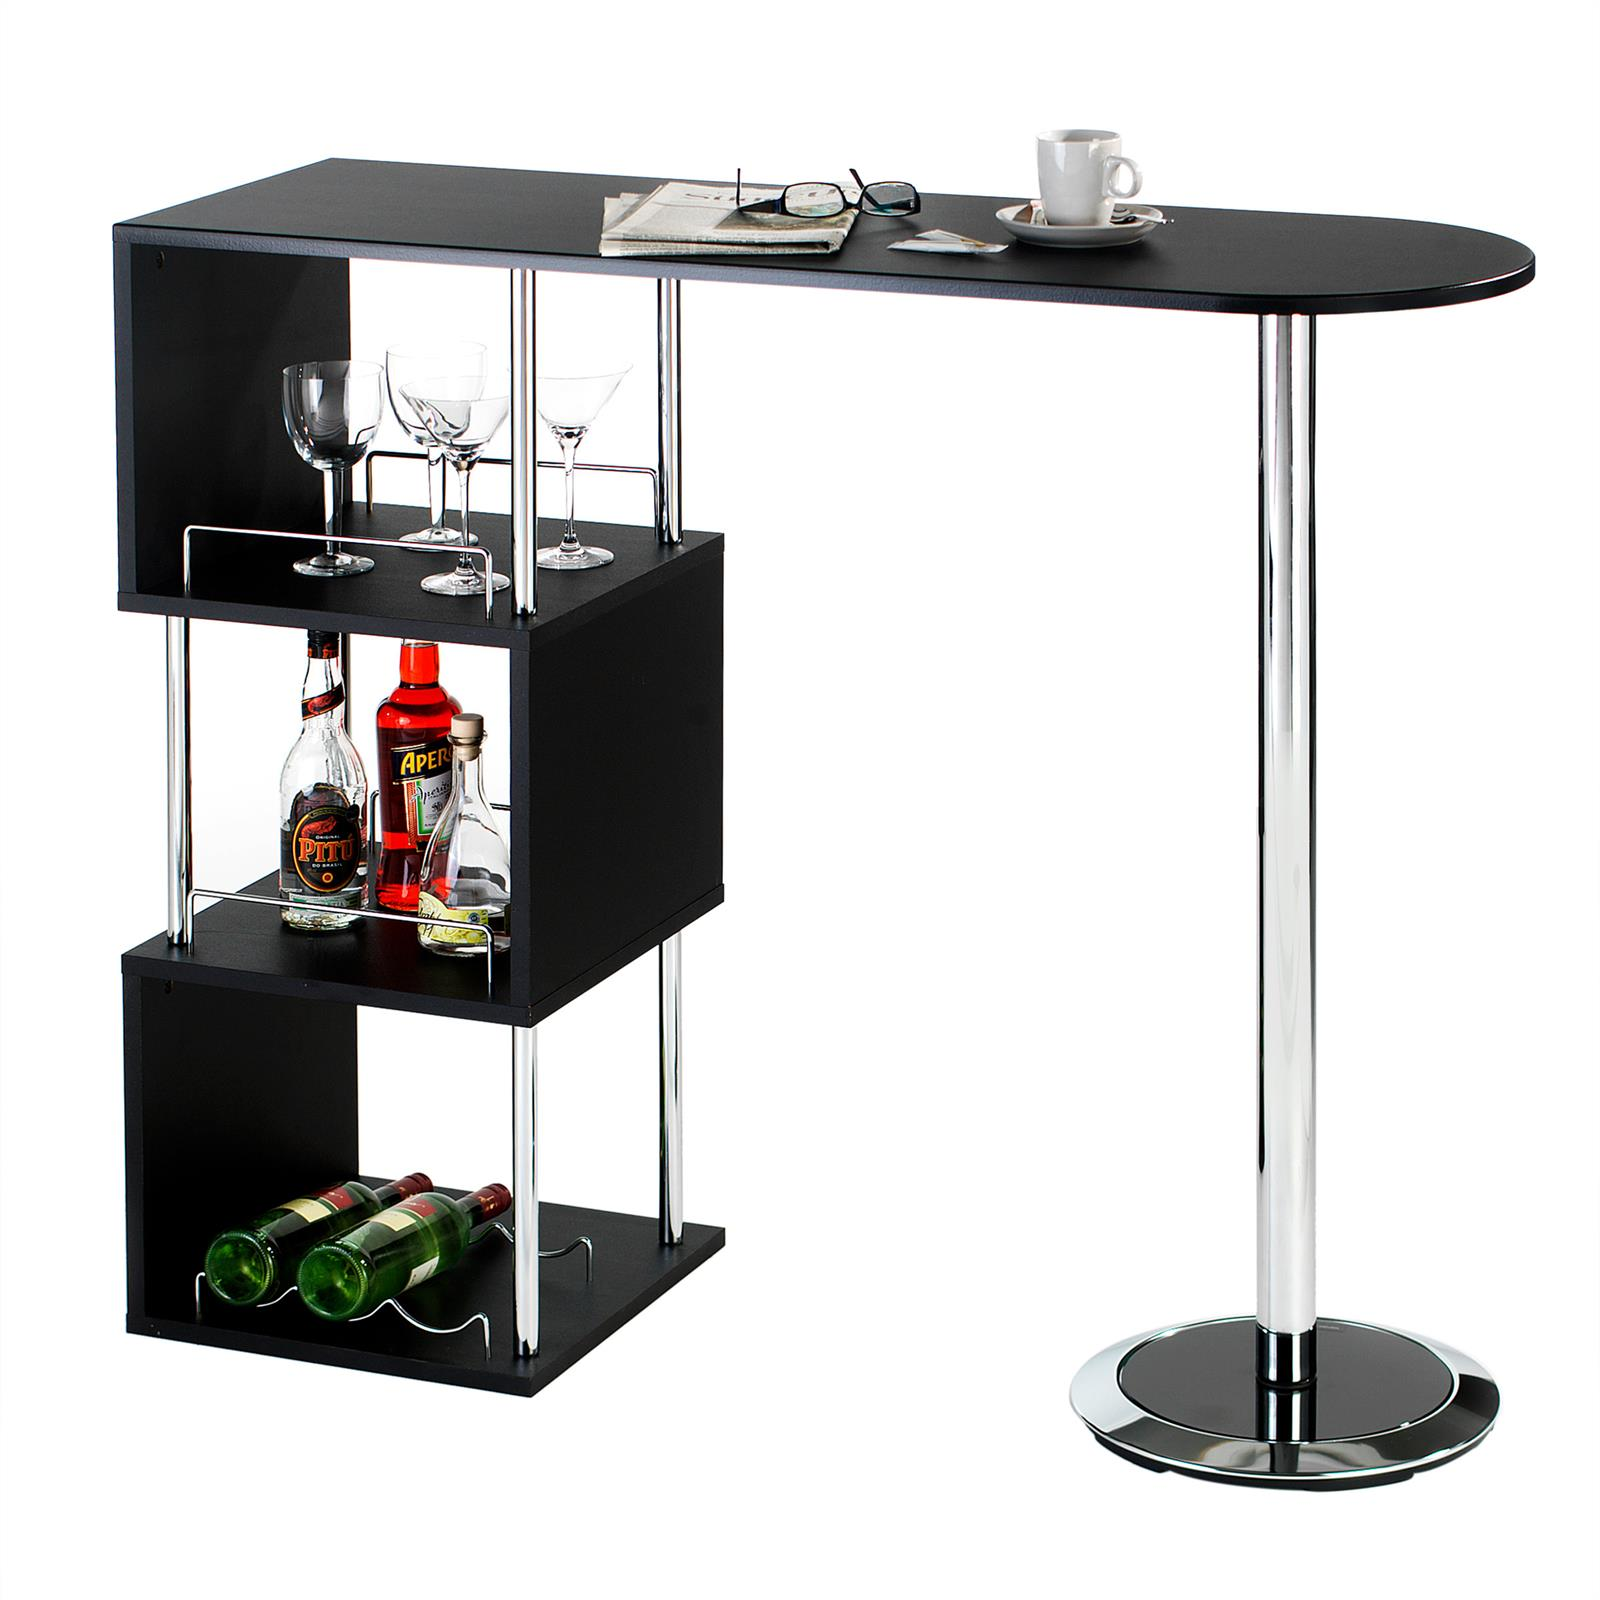 bartisch stehtisch bartresen bistrotisch tresentisch in schwarz weiss sonoma ebay. Black Bedroom Furniture Sets. Home Design Ideas